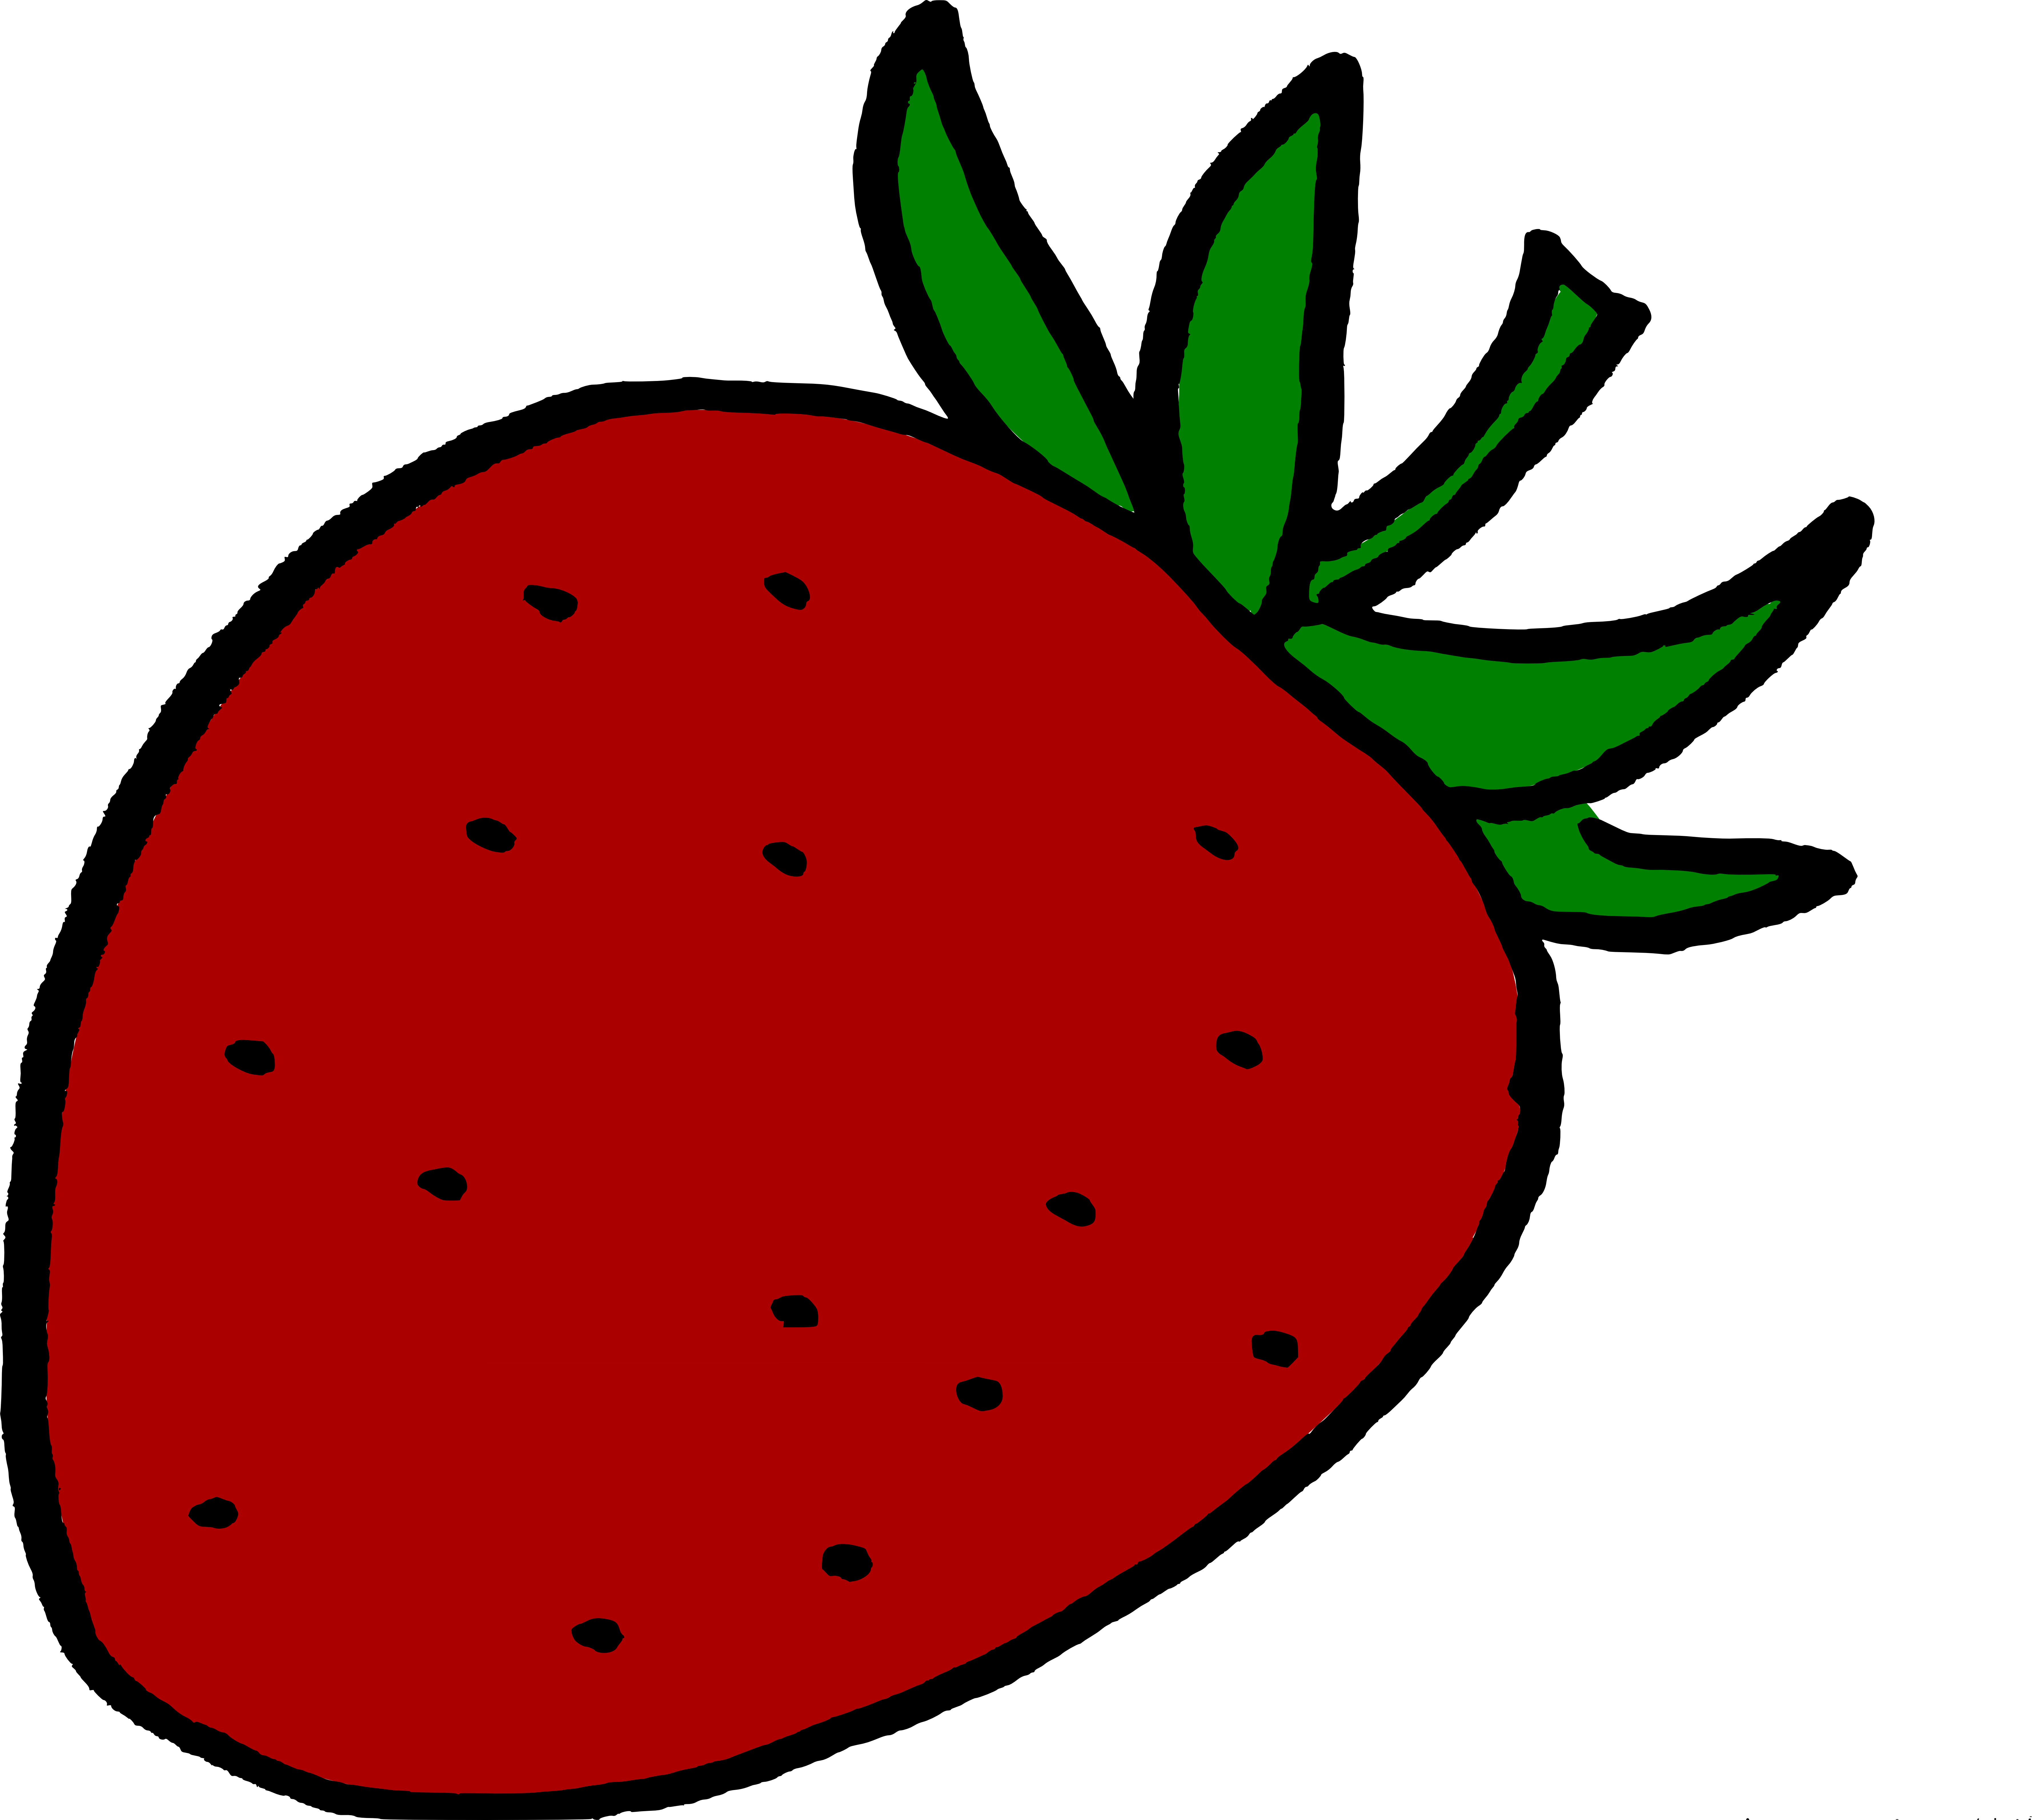 Strawberries clipart stem. Is it a vegetable